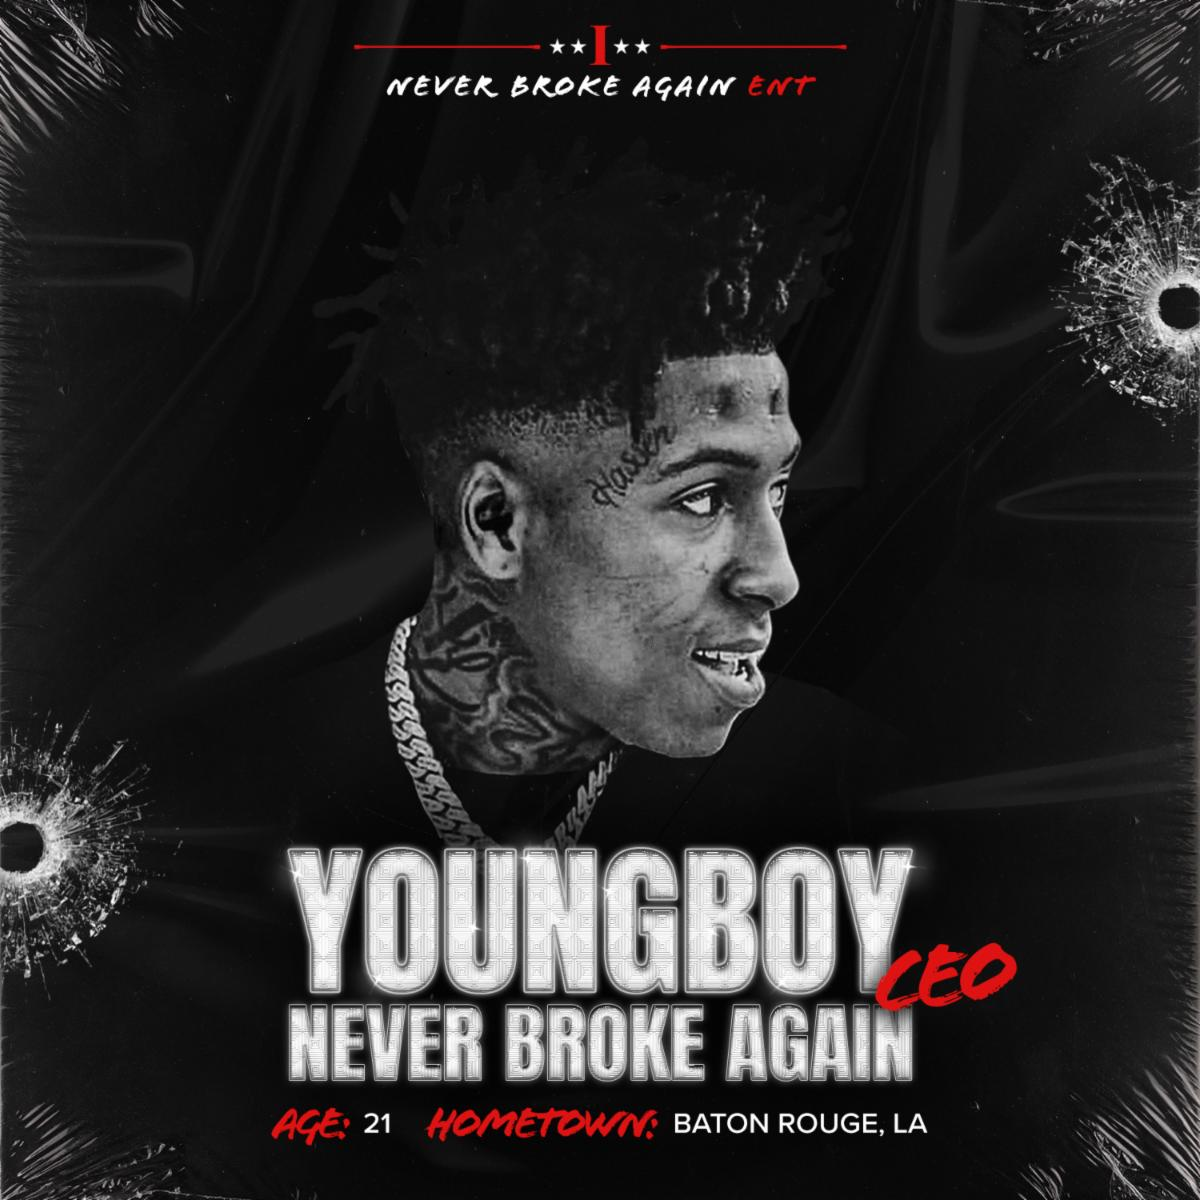 Youngboy via Motown Records for use by 360 Magazine